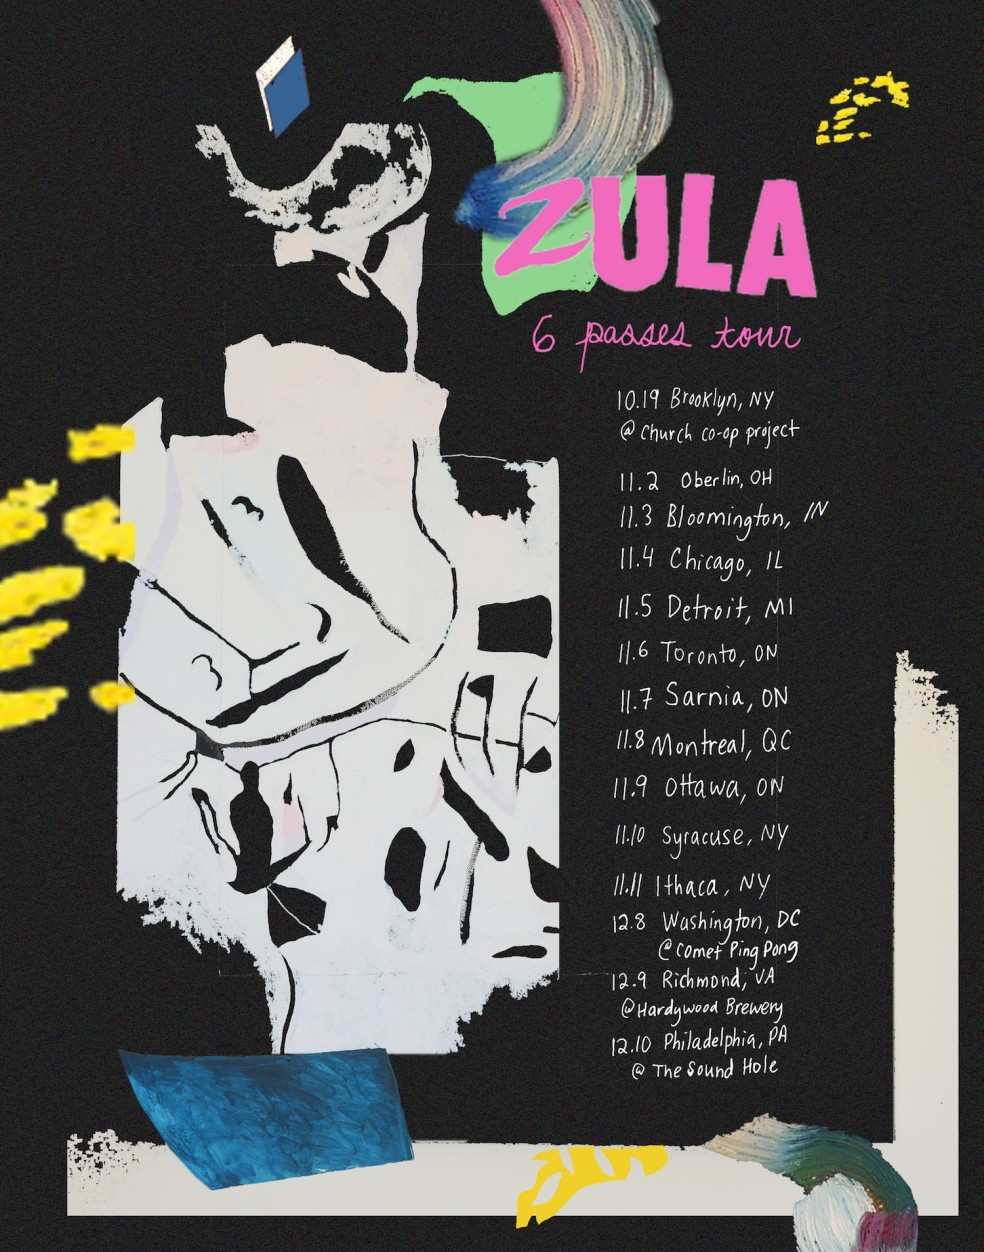 Zula November 2017 Tour Poster (web res)